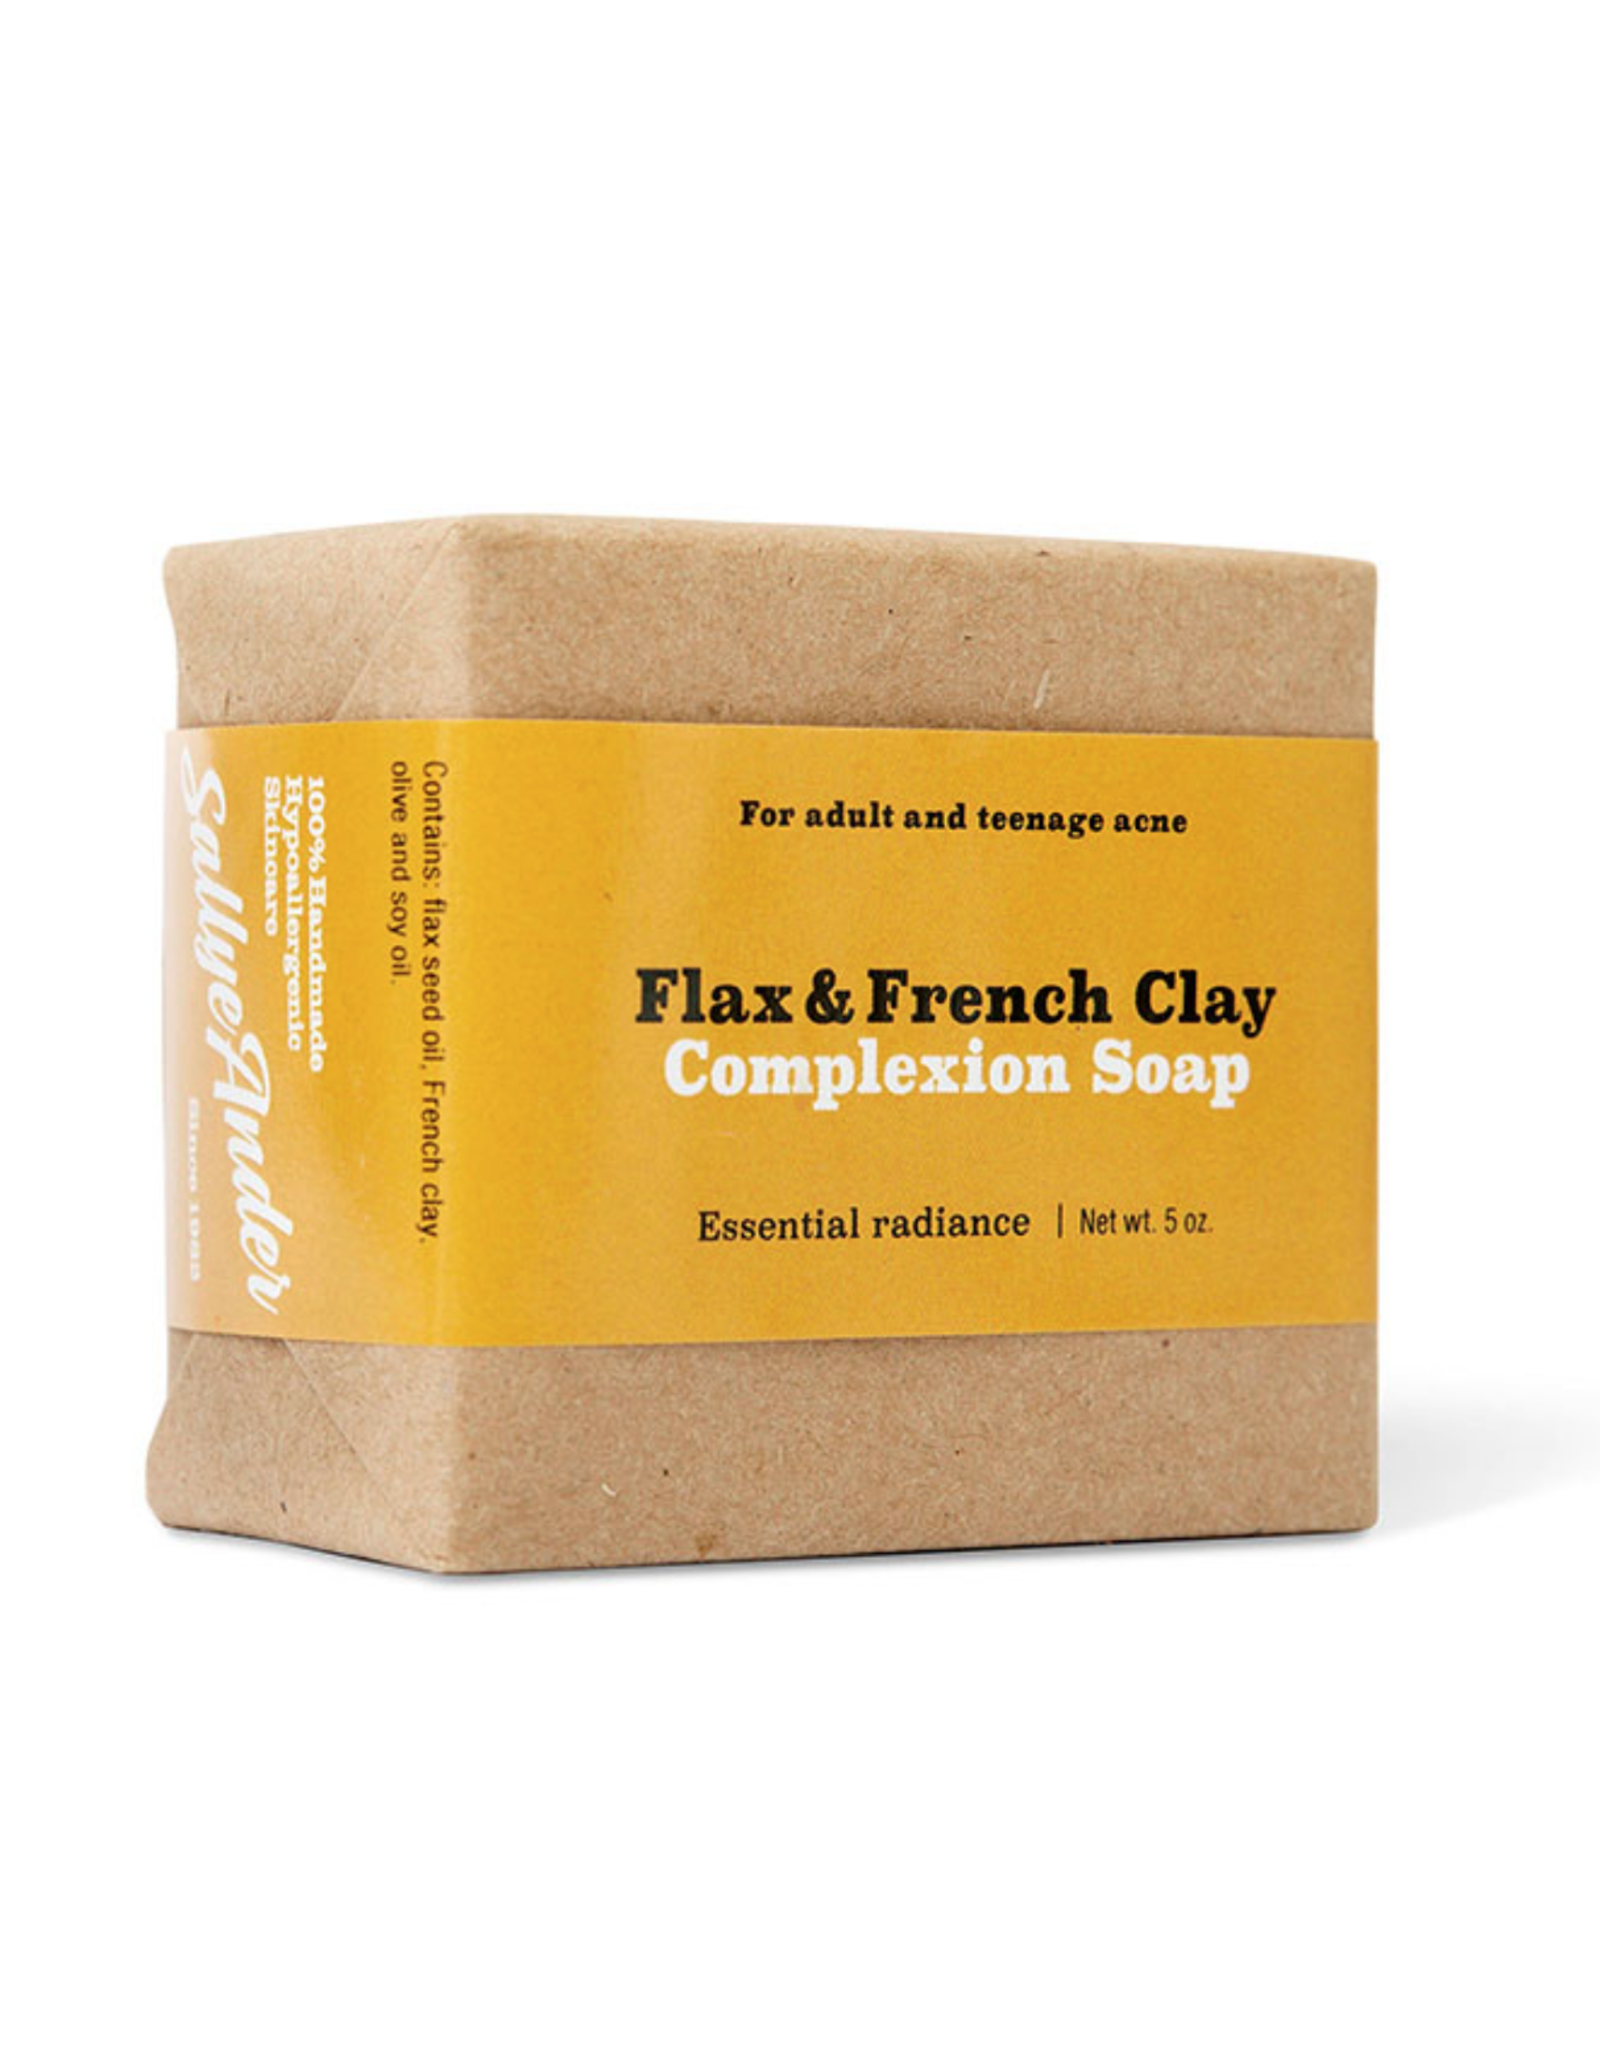 Flax & French Clay Bar Soap / Face Soap